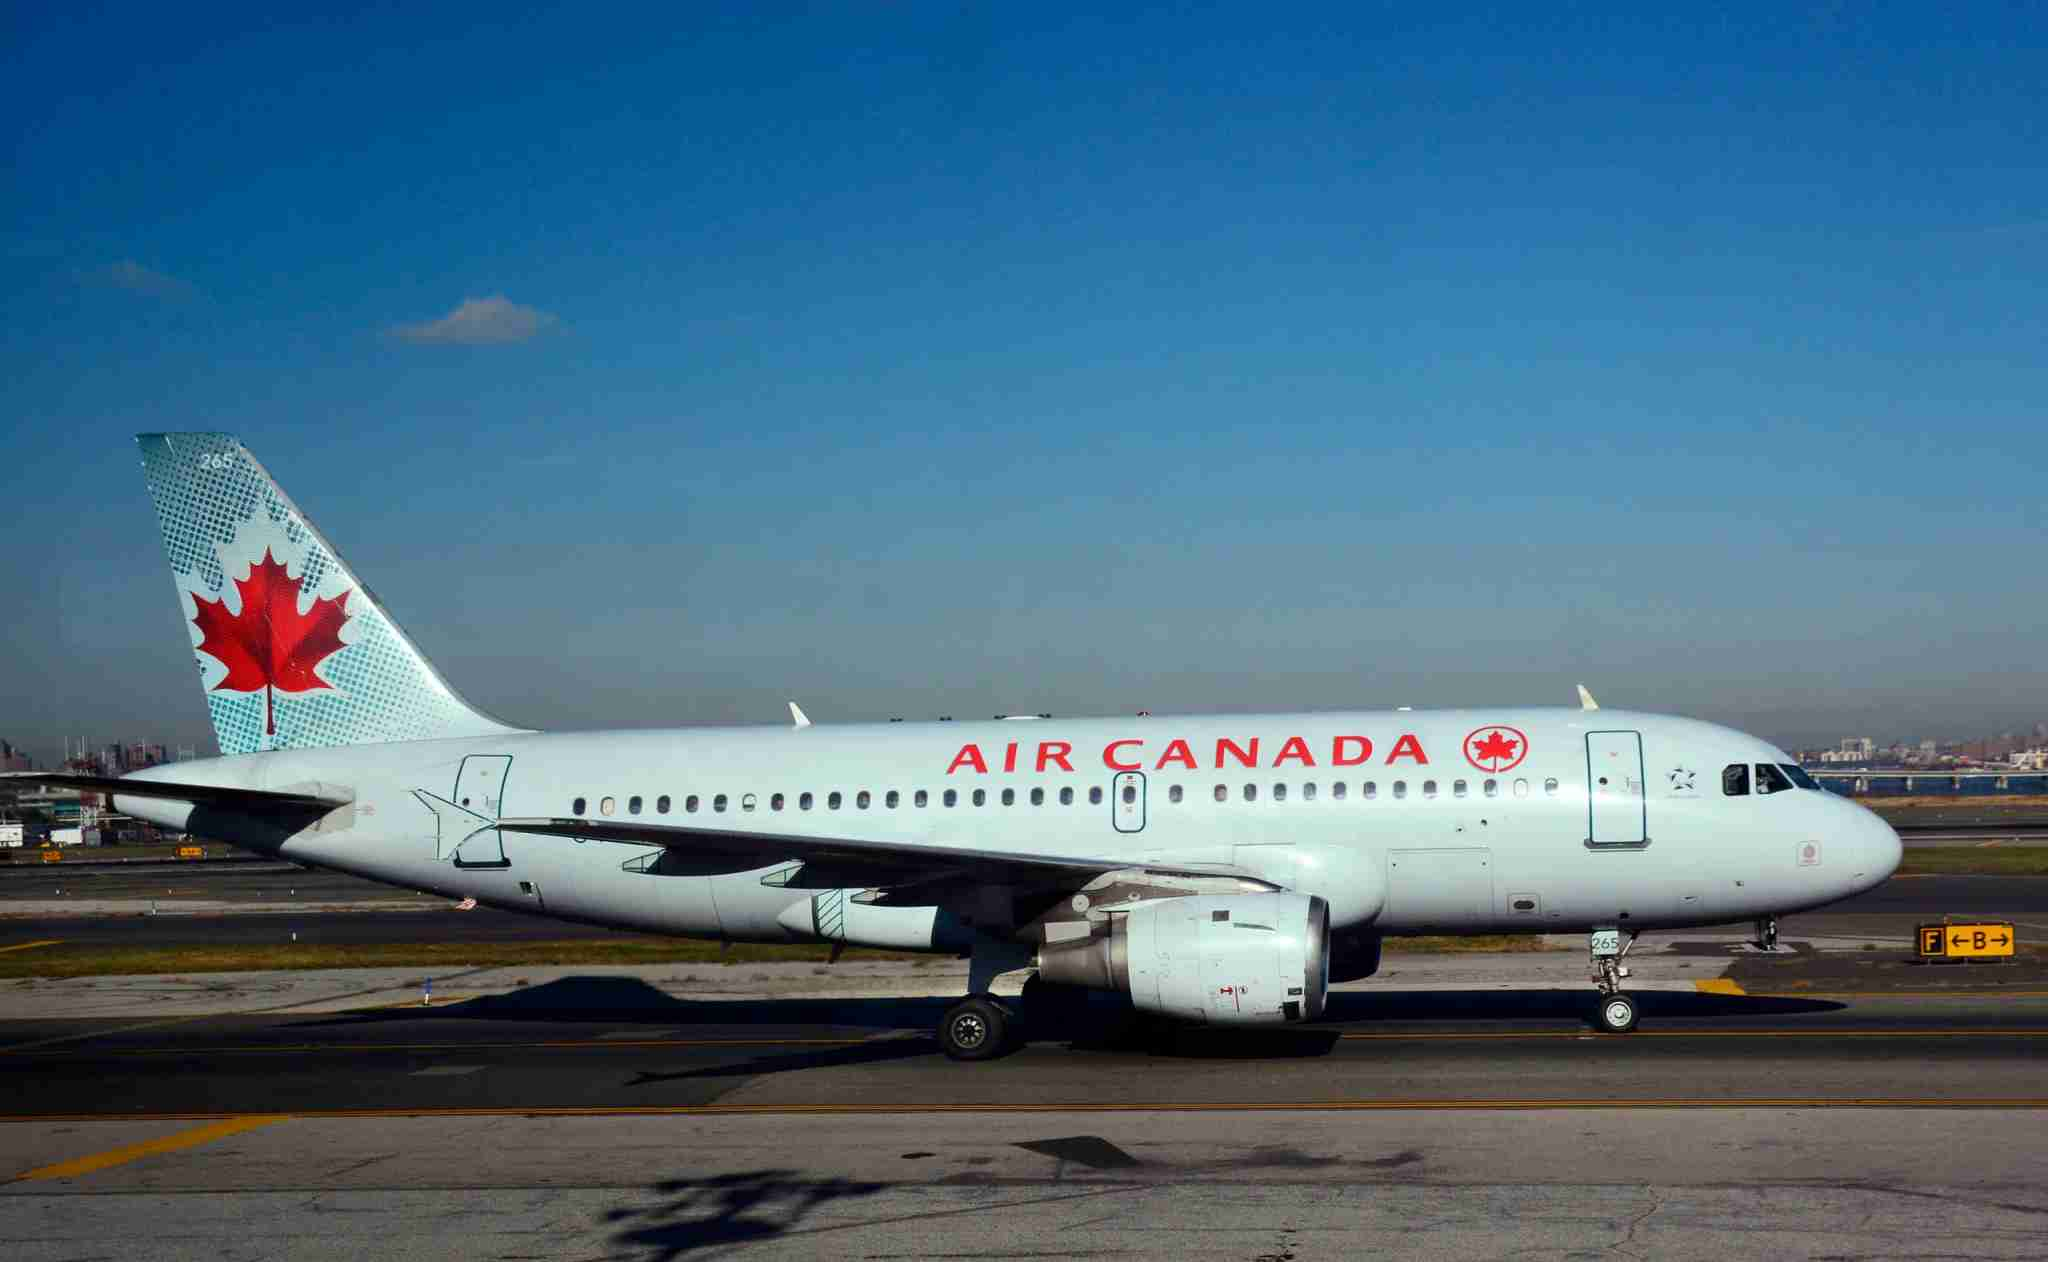 An Air Canada Airbus A319 is seen at New York LaGuardia in 2017. (Photo by Robert Alexander/Getty Images)